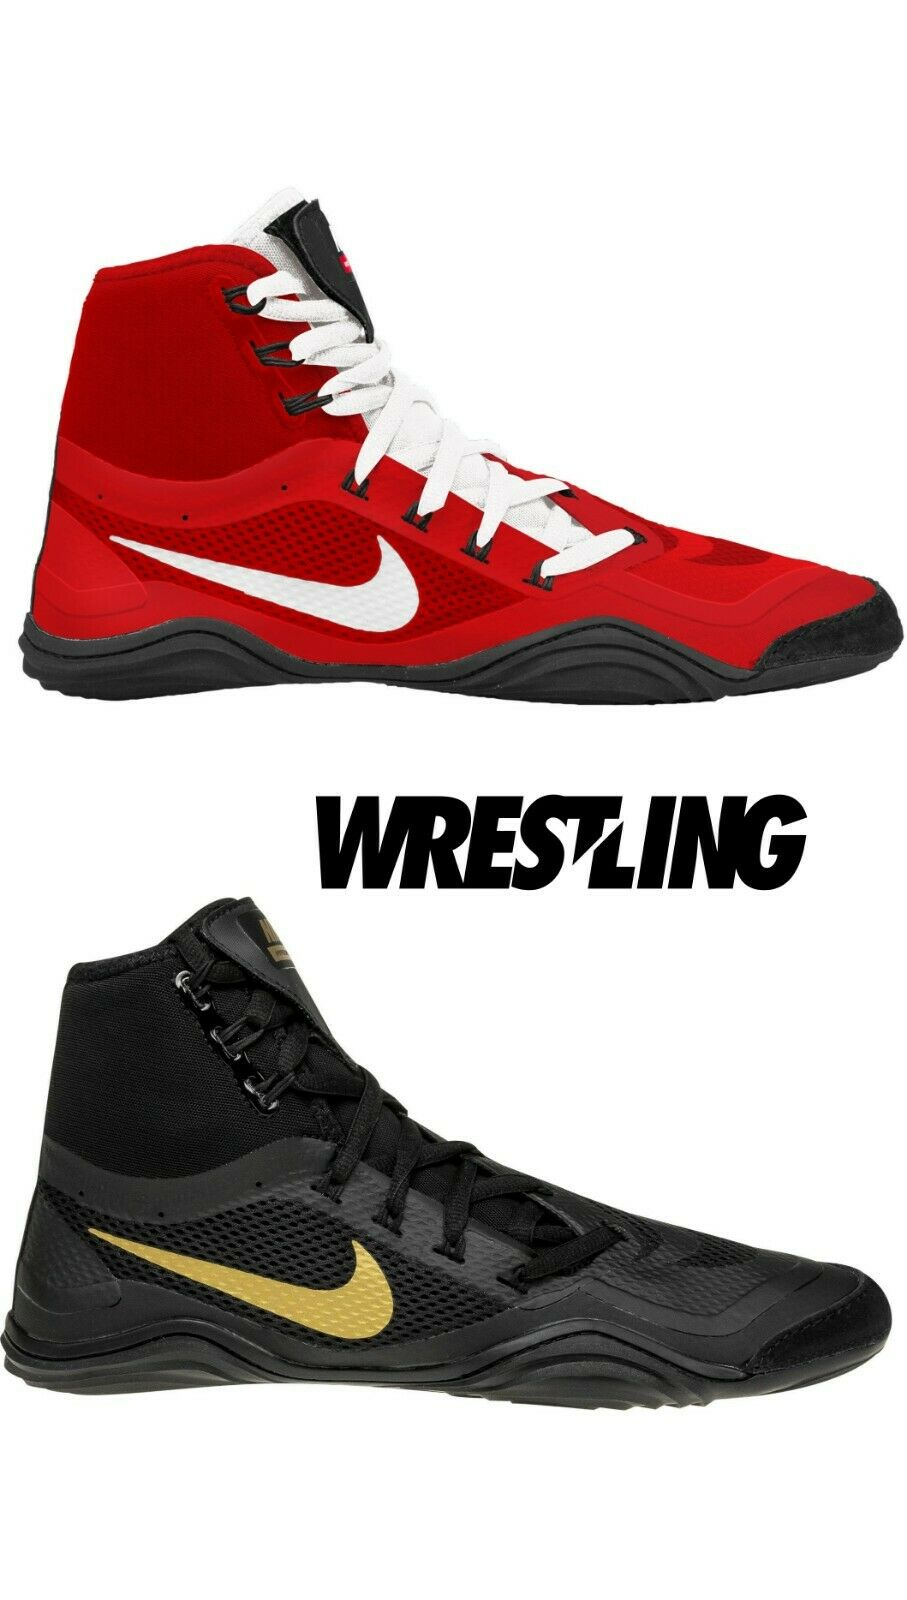 Details about Nike Hypersweep Men's Wrestling Shoes Boxing MMA Combat Sports Shoes Boots